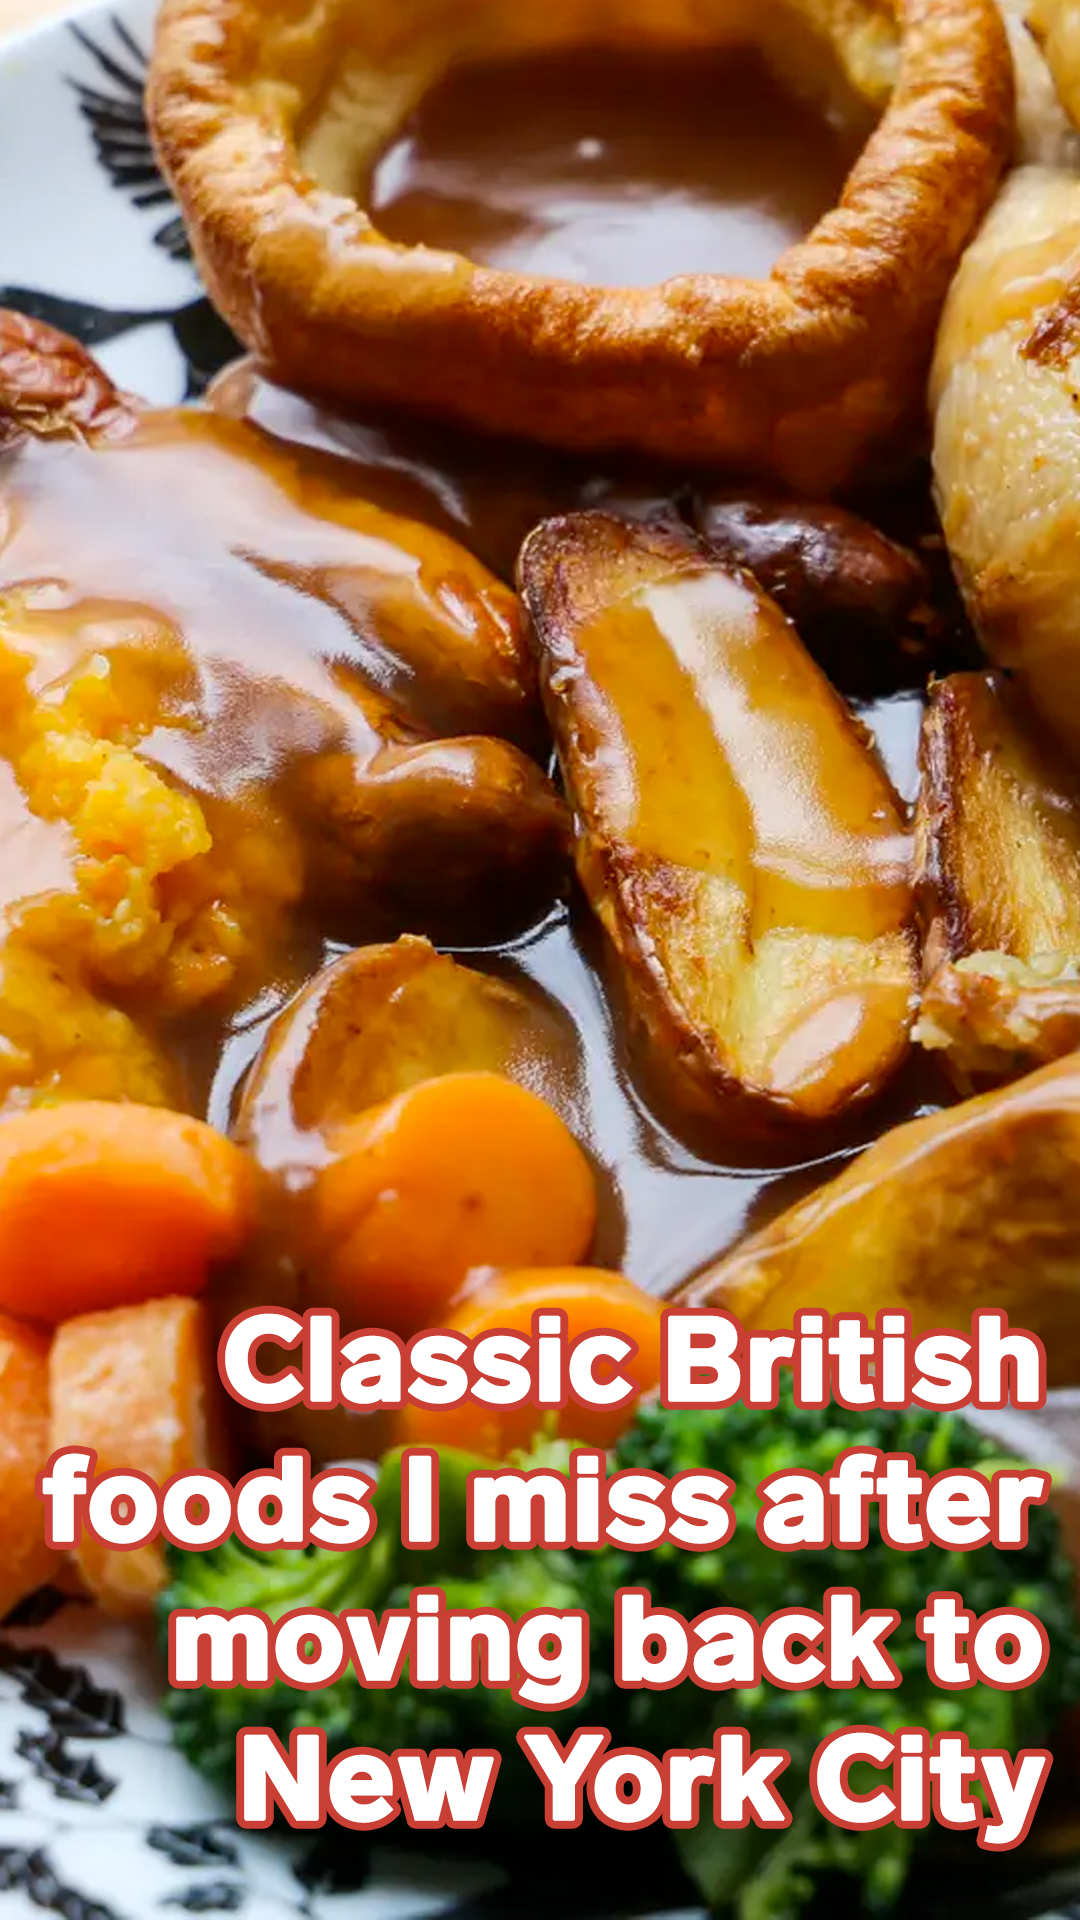 I just moved back to New York after a year in London, and these are the classic British foods I miss the most